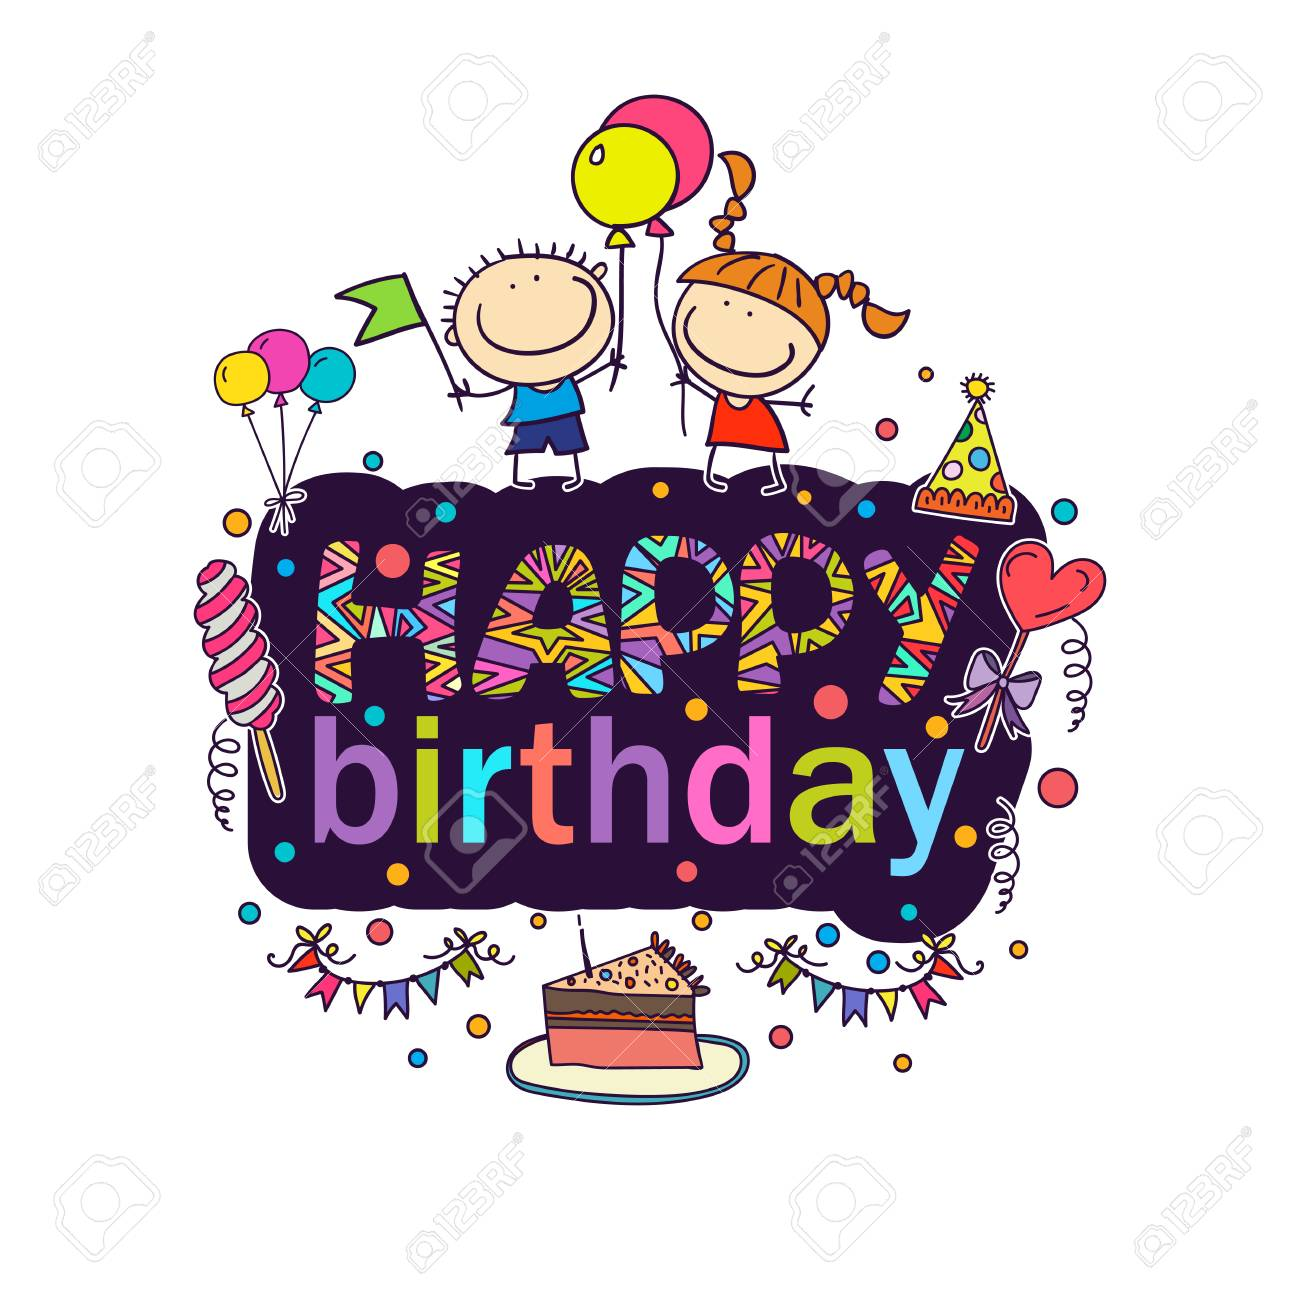 Poster For The Birthday Greetings Royalty Free Cliparts Vectors